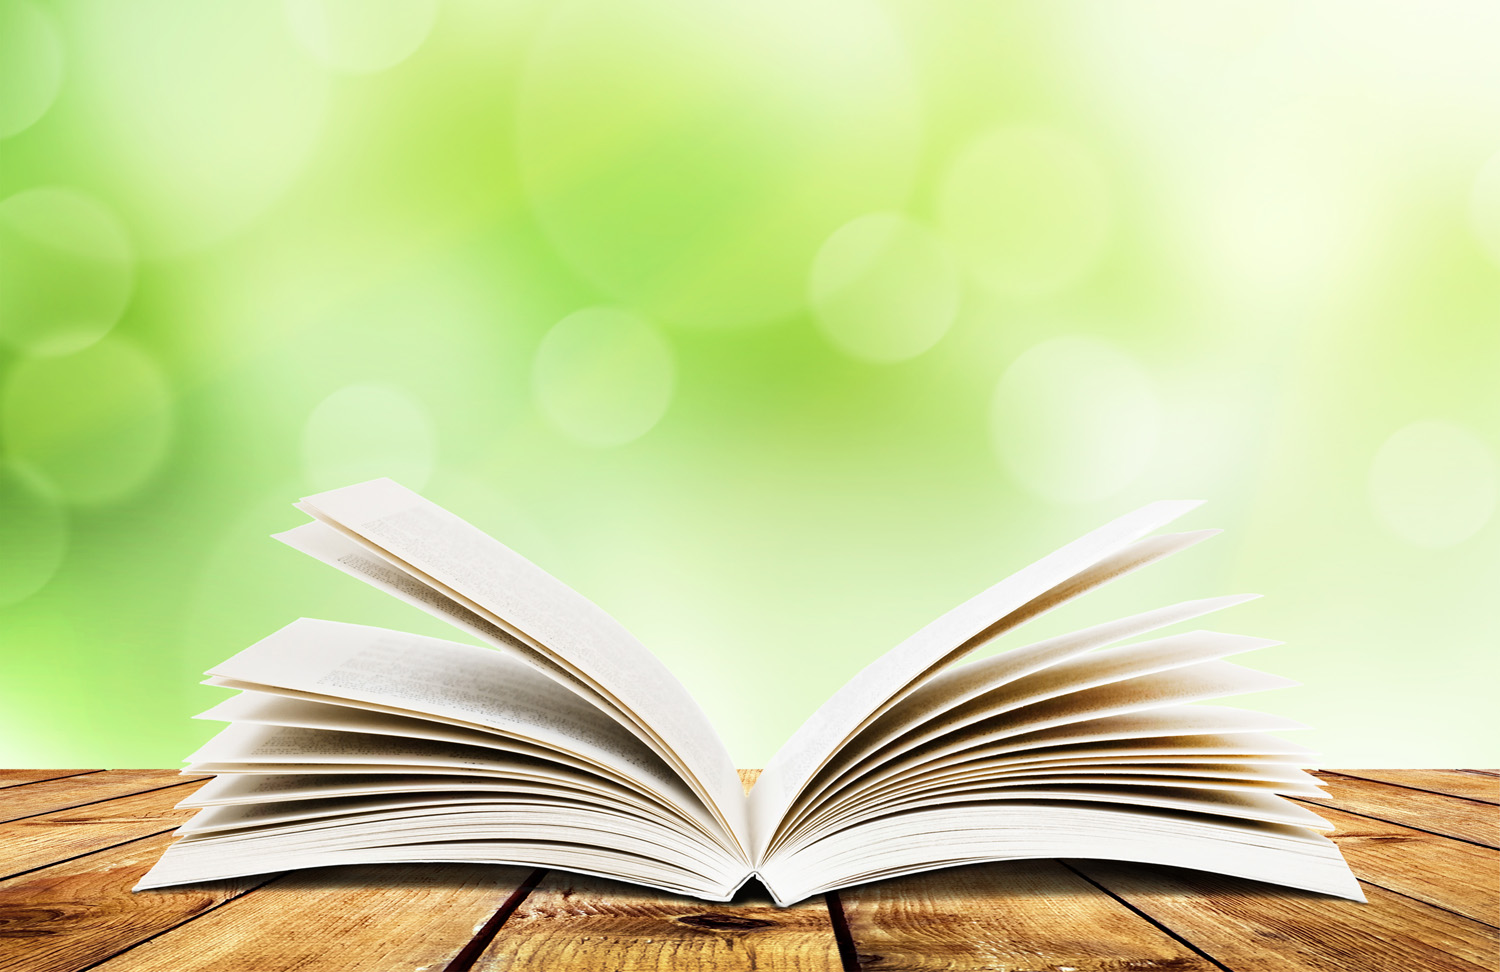 Open book on a table with a blurred leafy background 1500x972